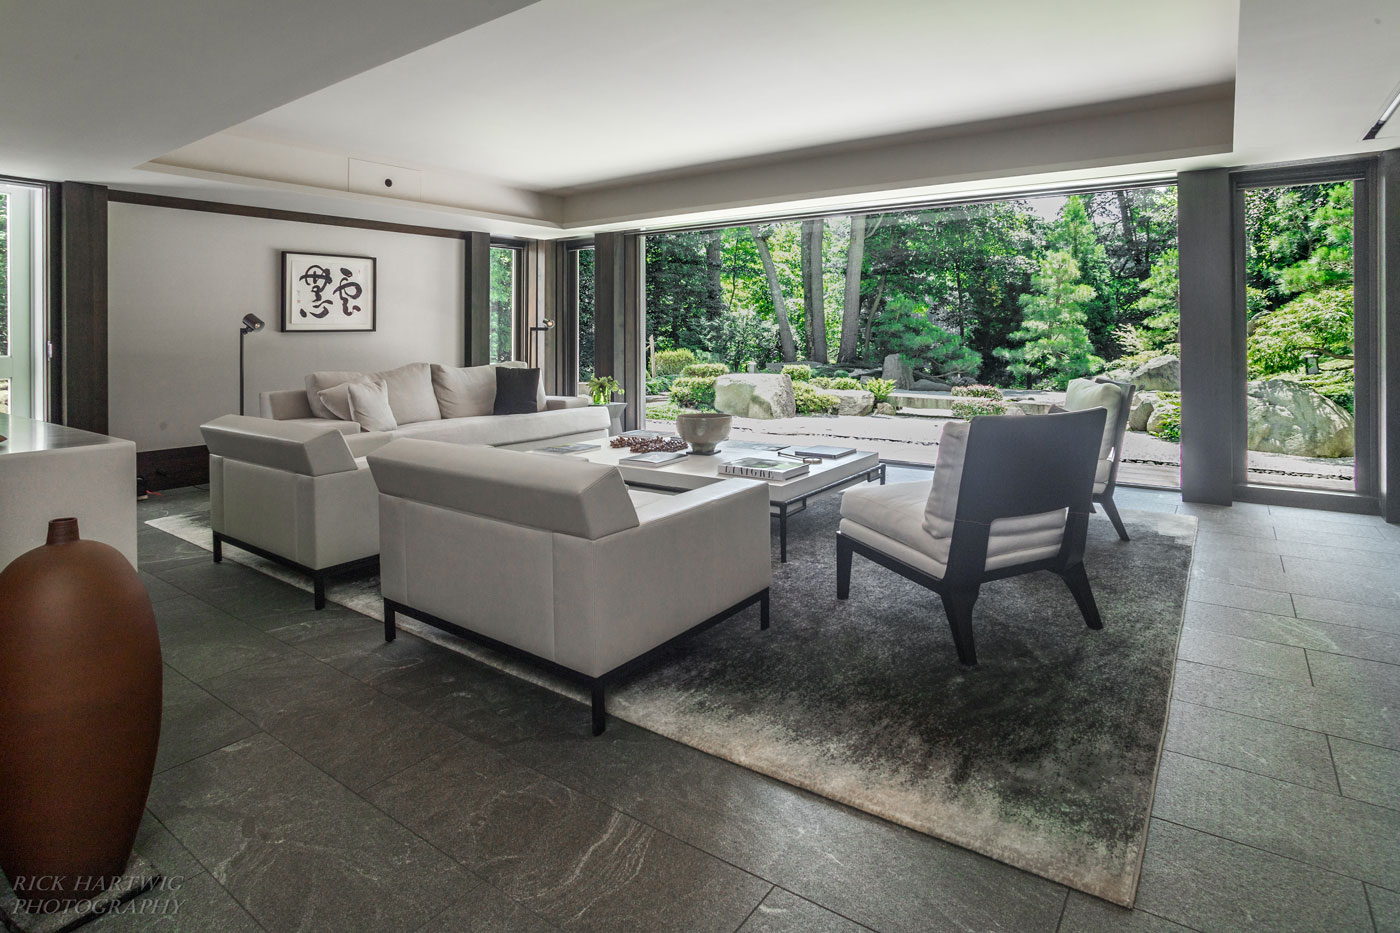 Serene living area with floor to ceiling windows looking out into nature